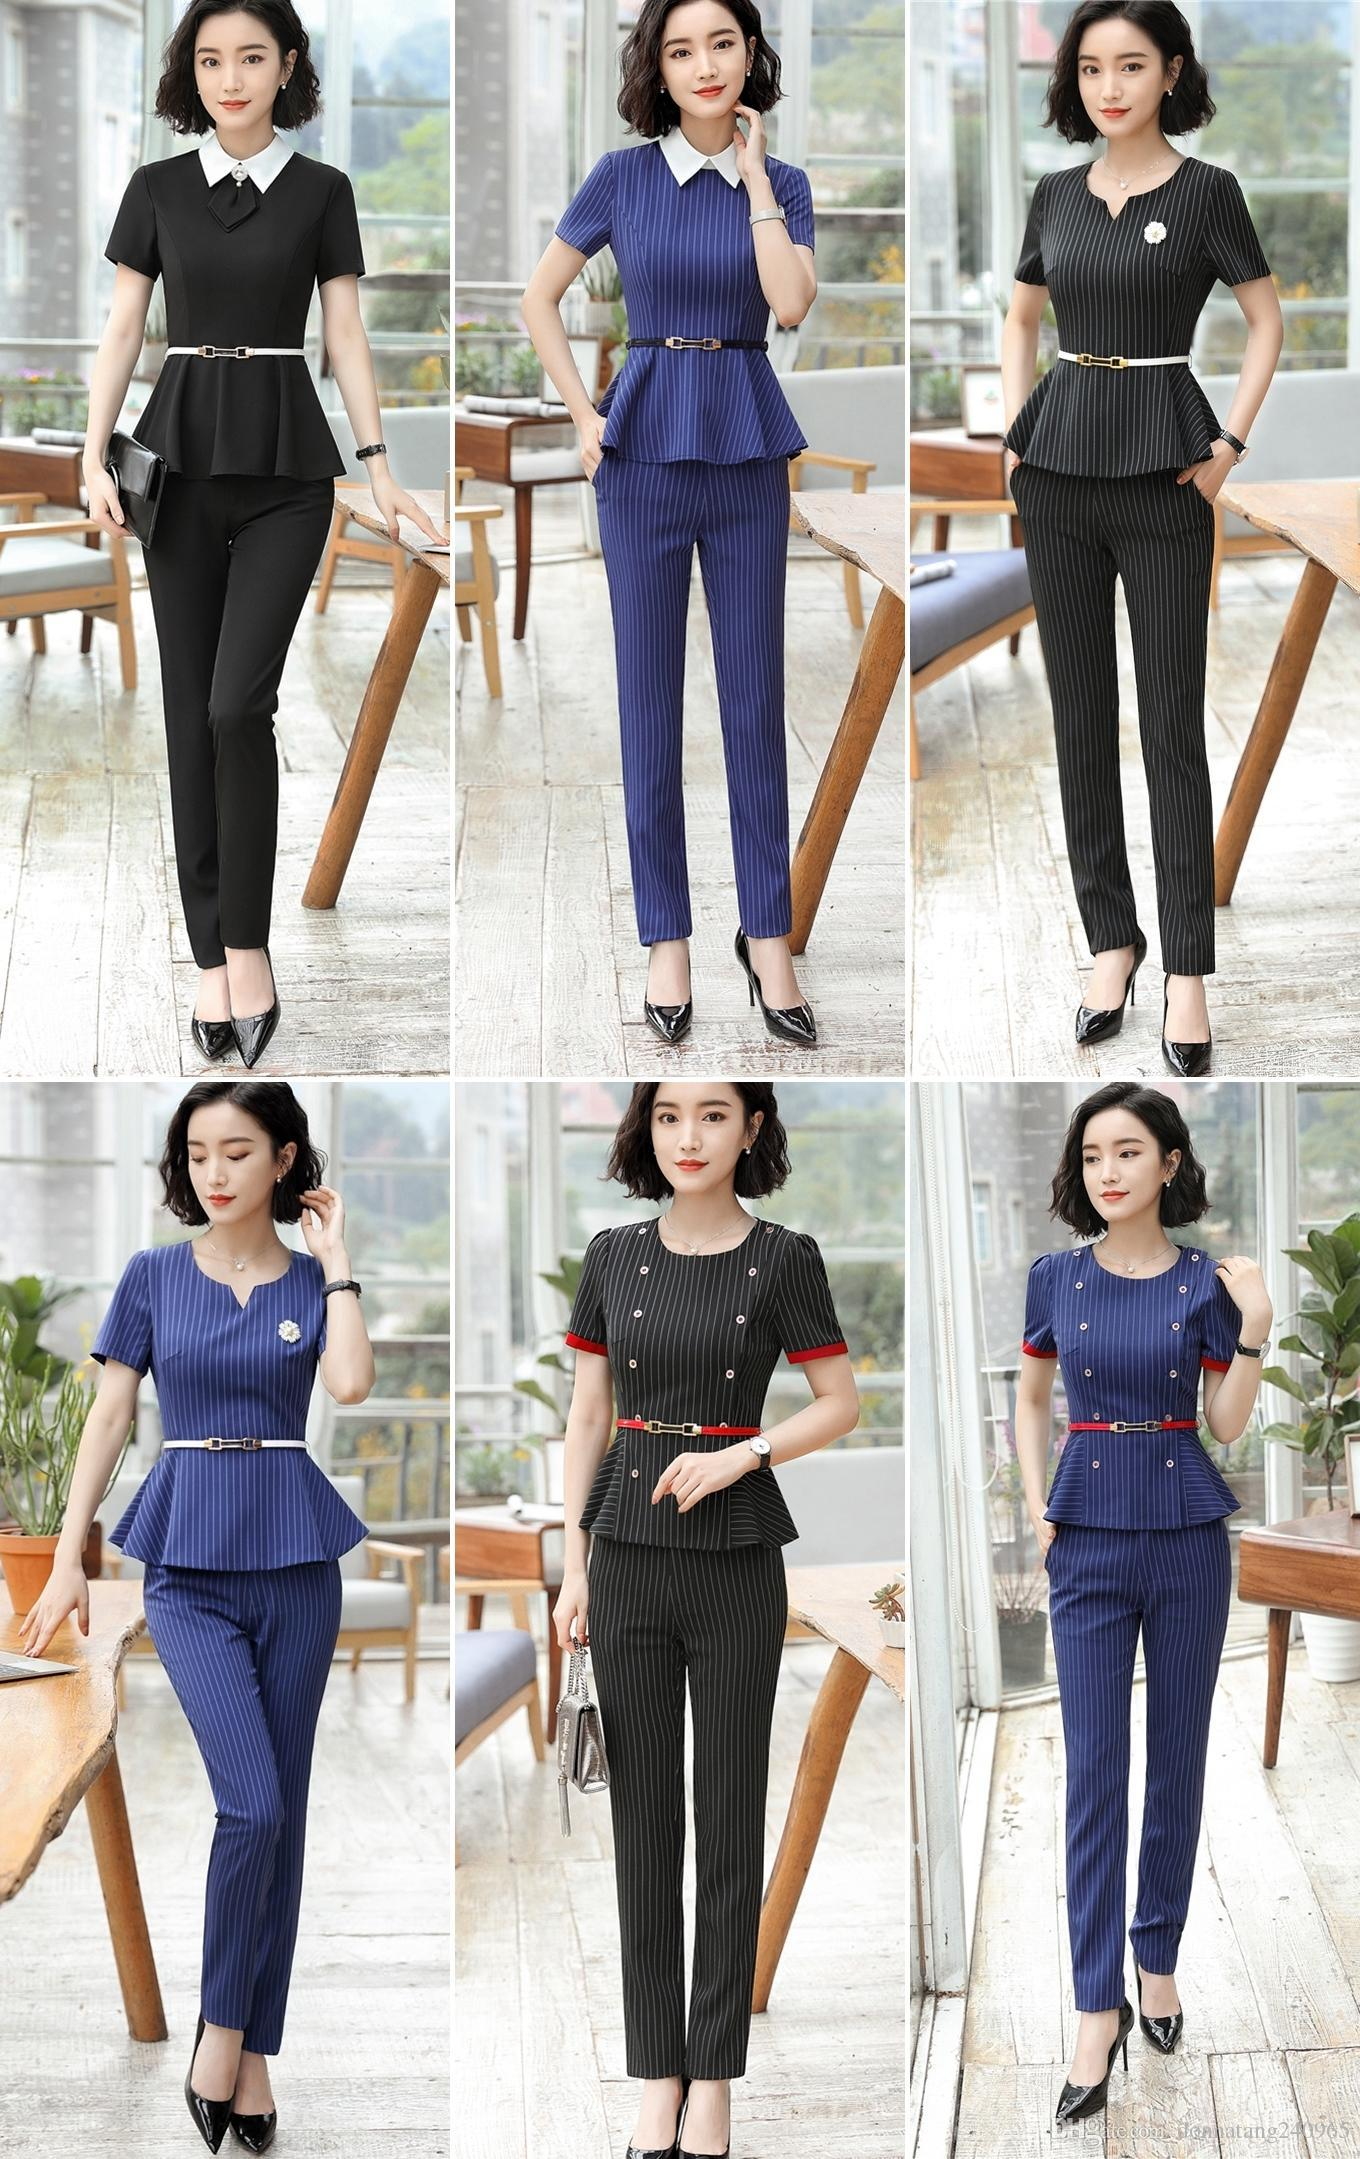 c6d97b558fee 2019 New Summer Short Sleeve Striped Formal Uniform Design Female Pantsuits  With Tops And Pants Ladies Office Trousers Set Pants Suit From Dujotree